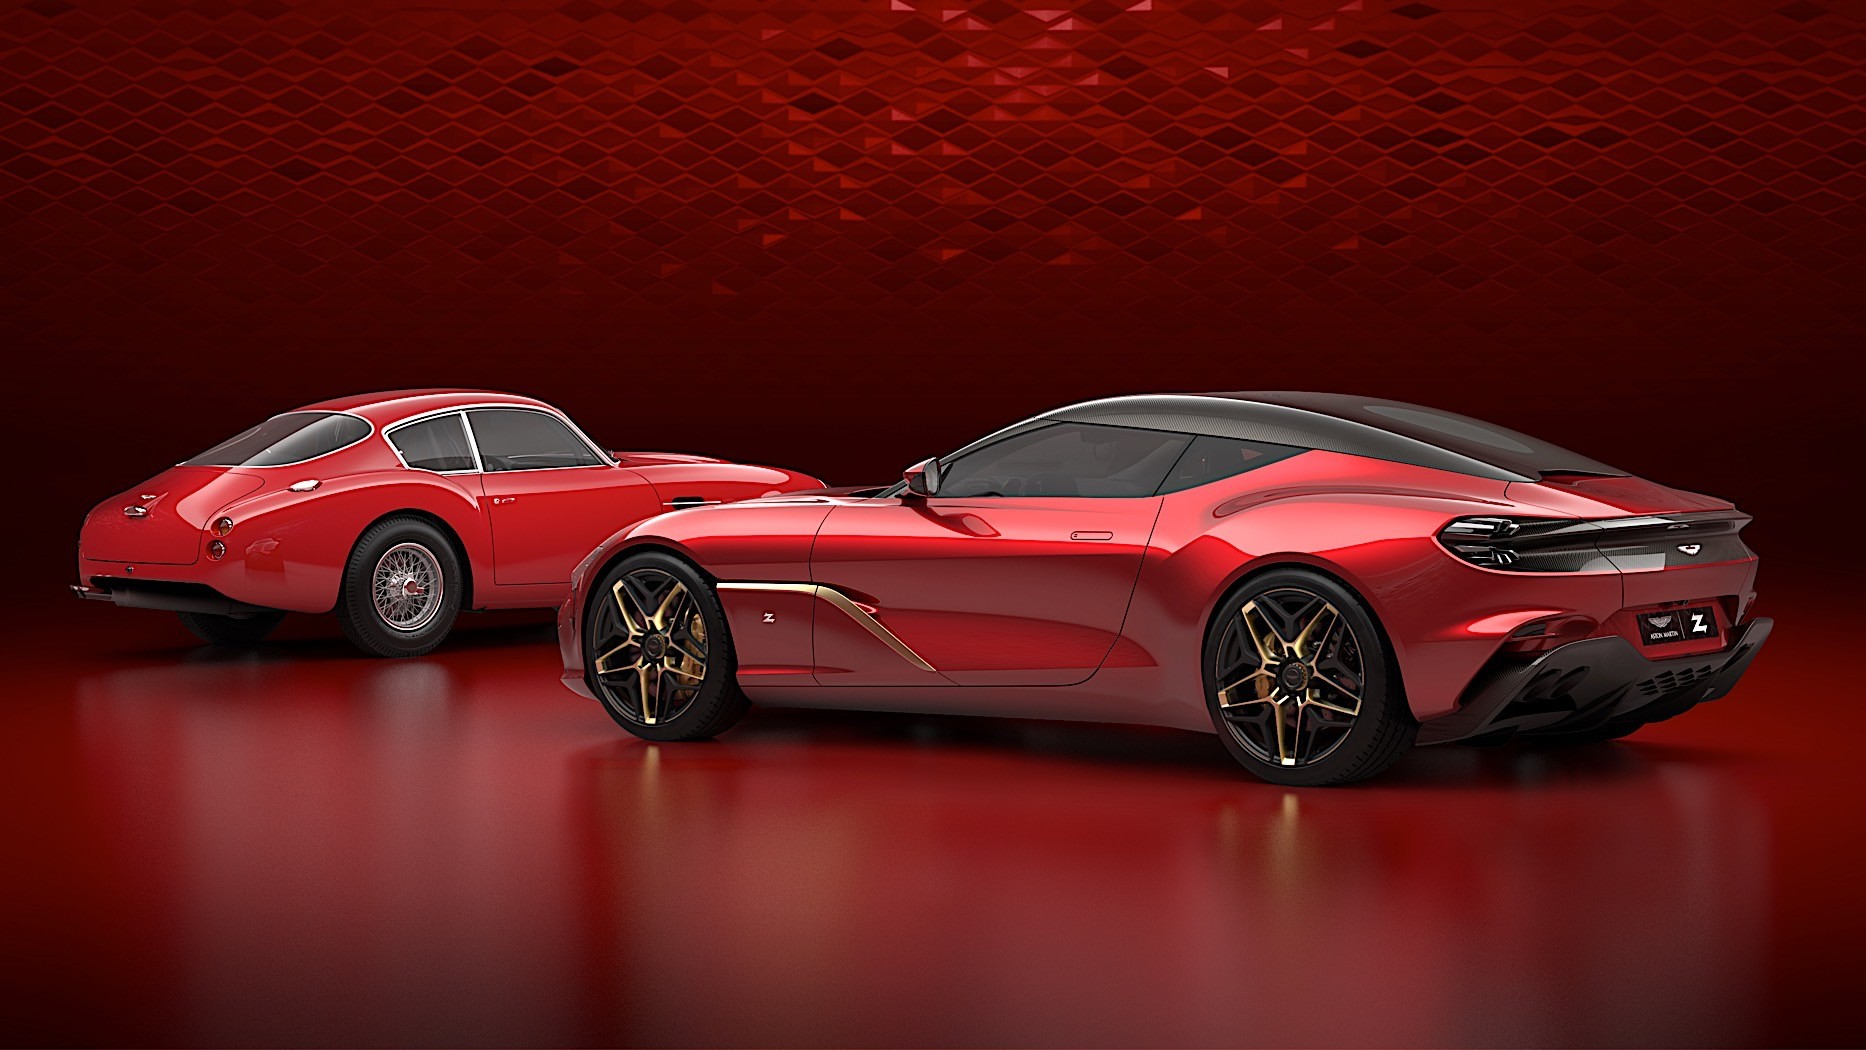 Feast Your Eyes On The Stunning Aston Martin DBS GT Zagato